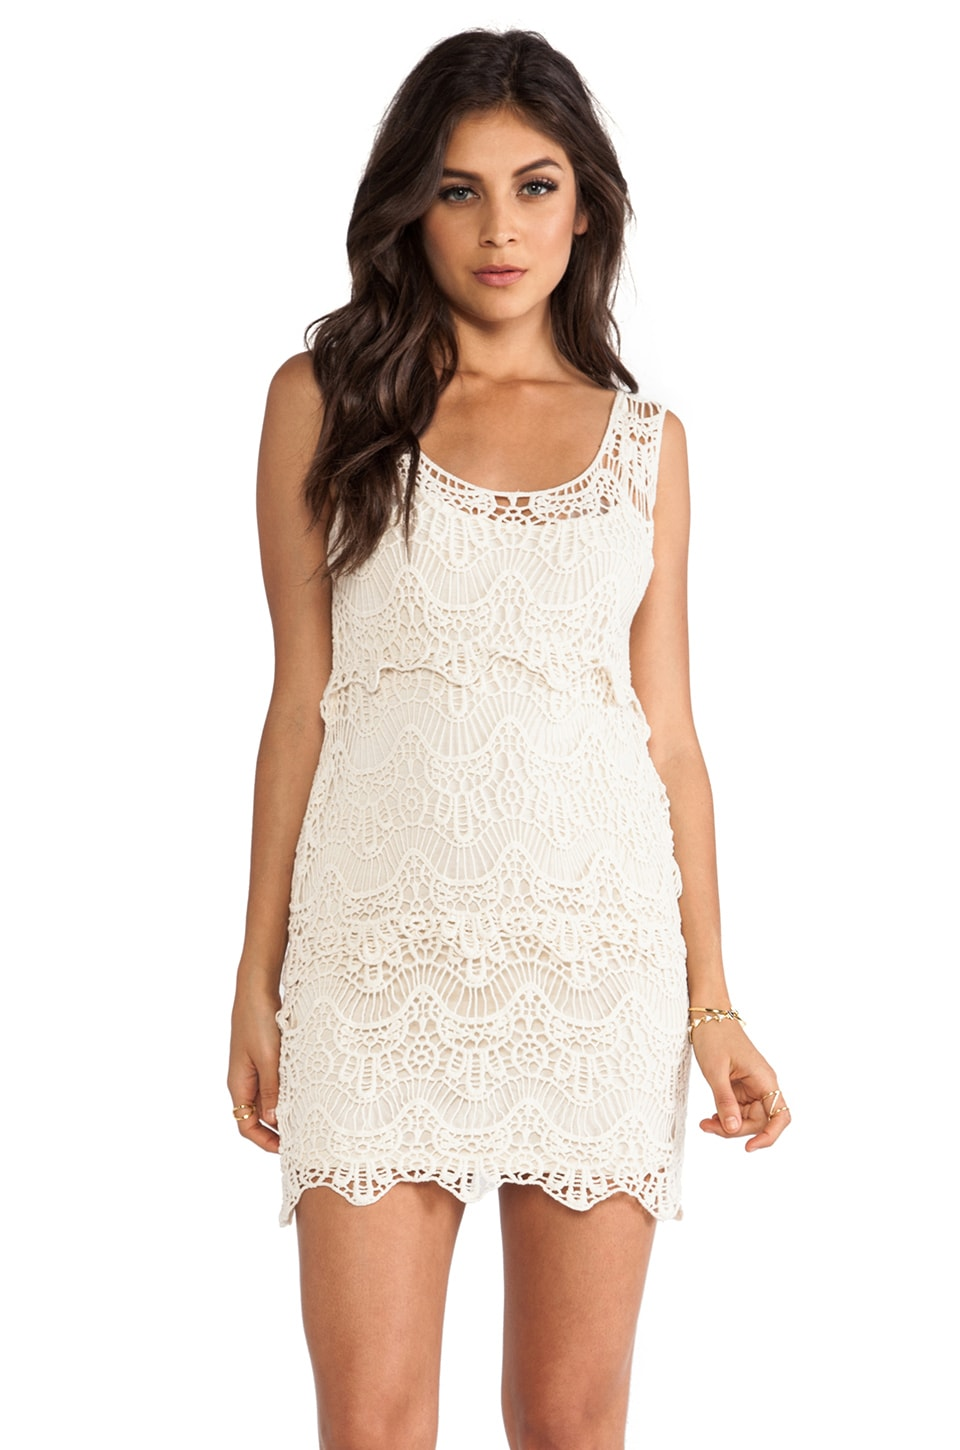 Ladakh Cotton Crochet Dress in Ivory